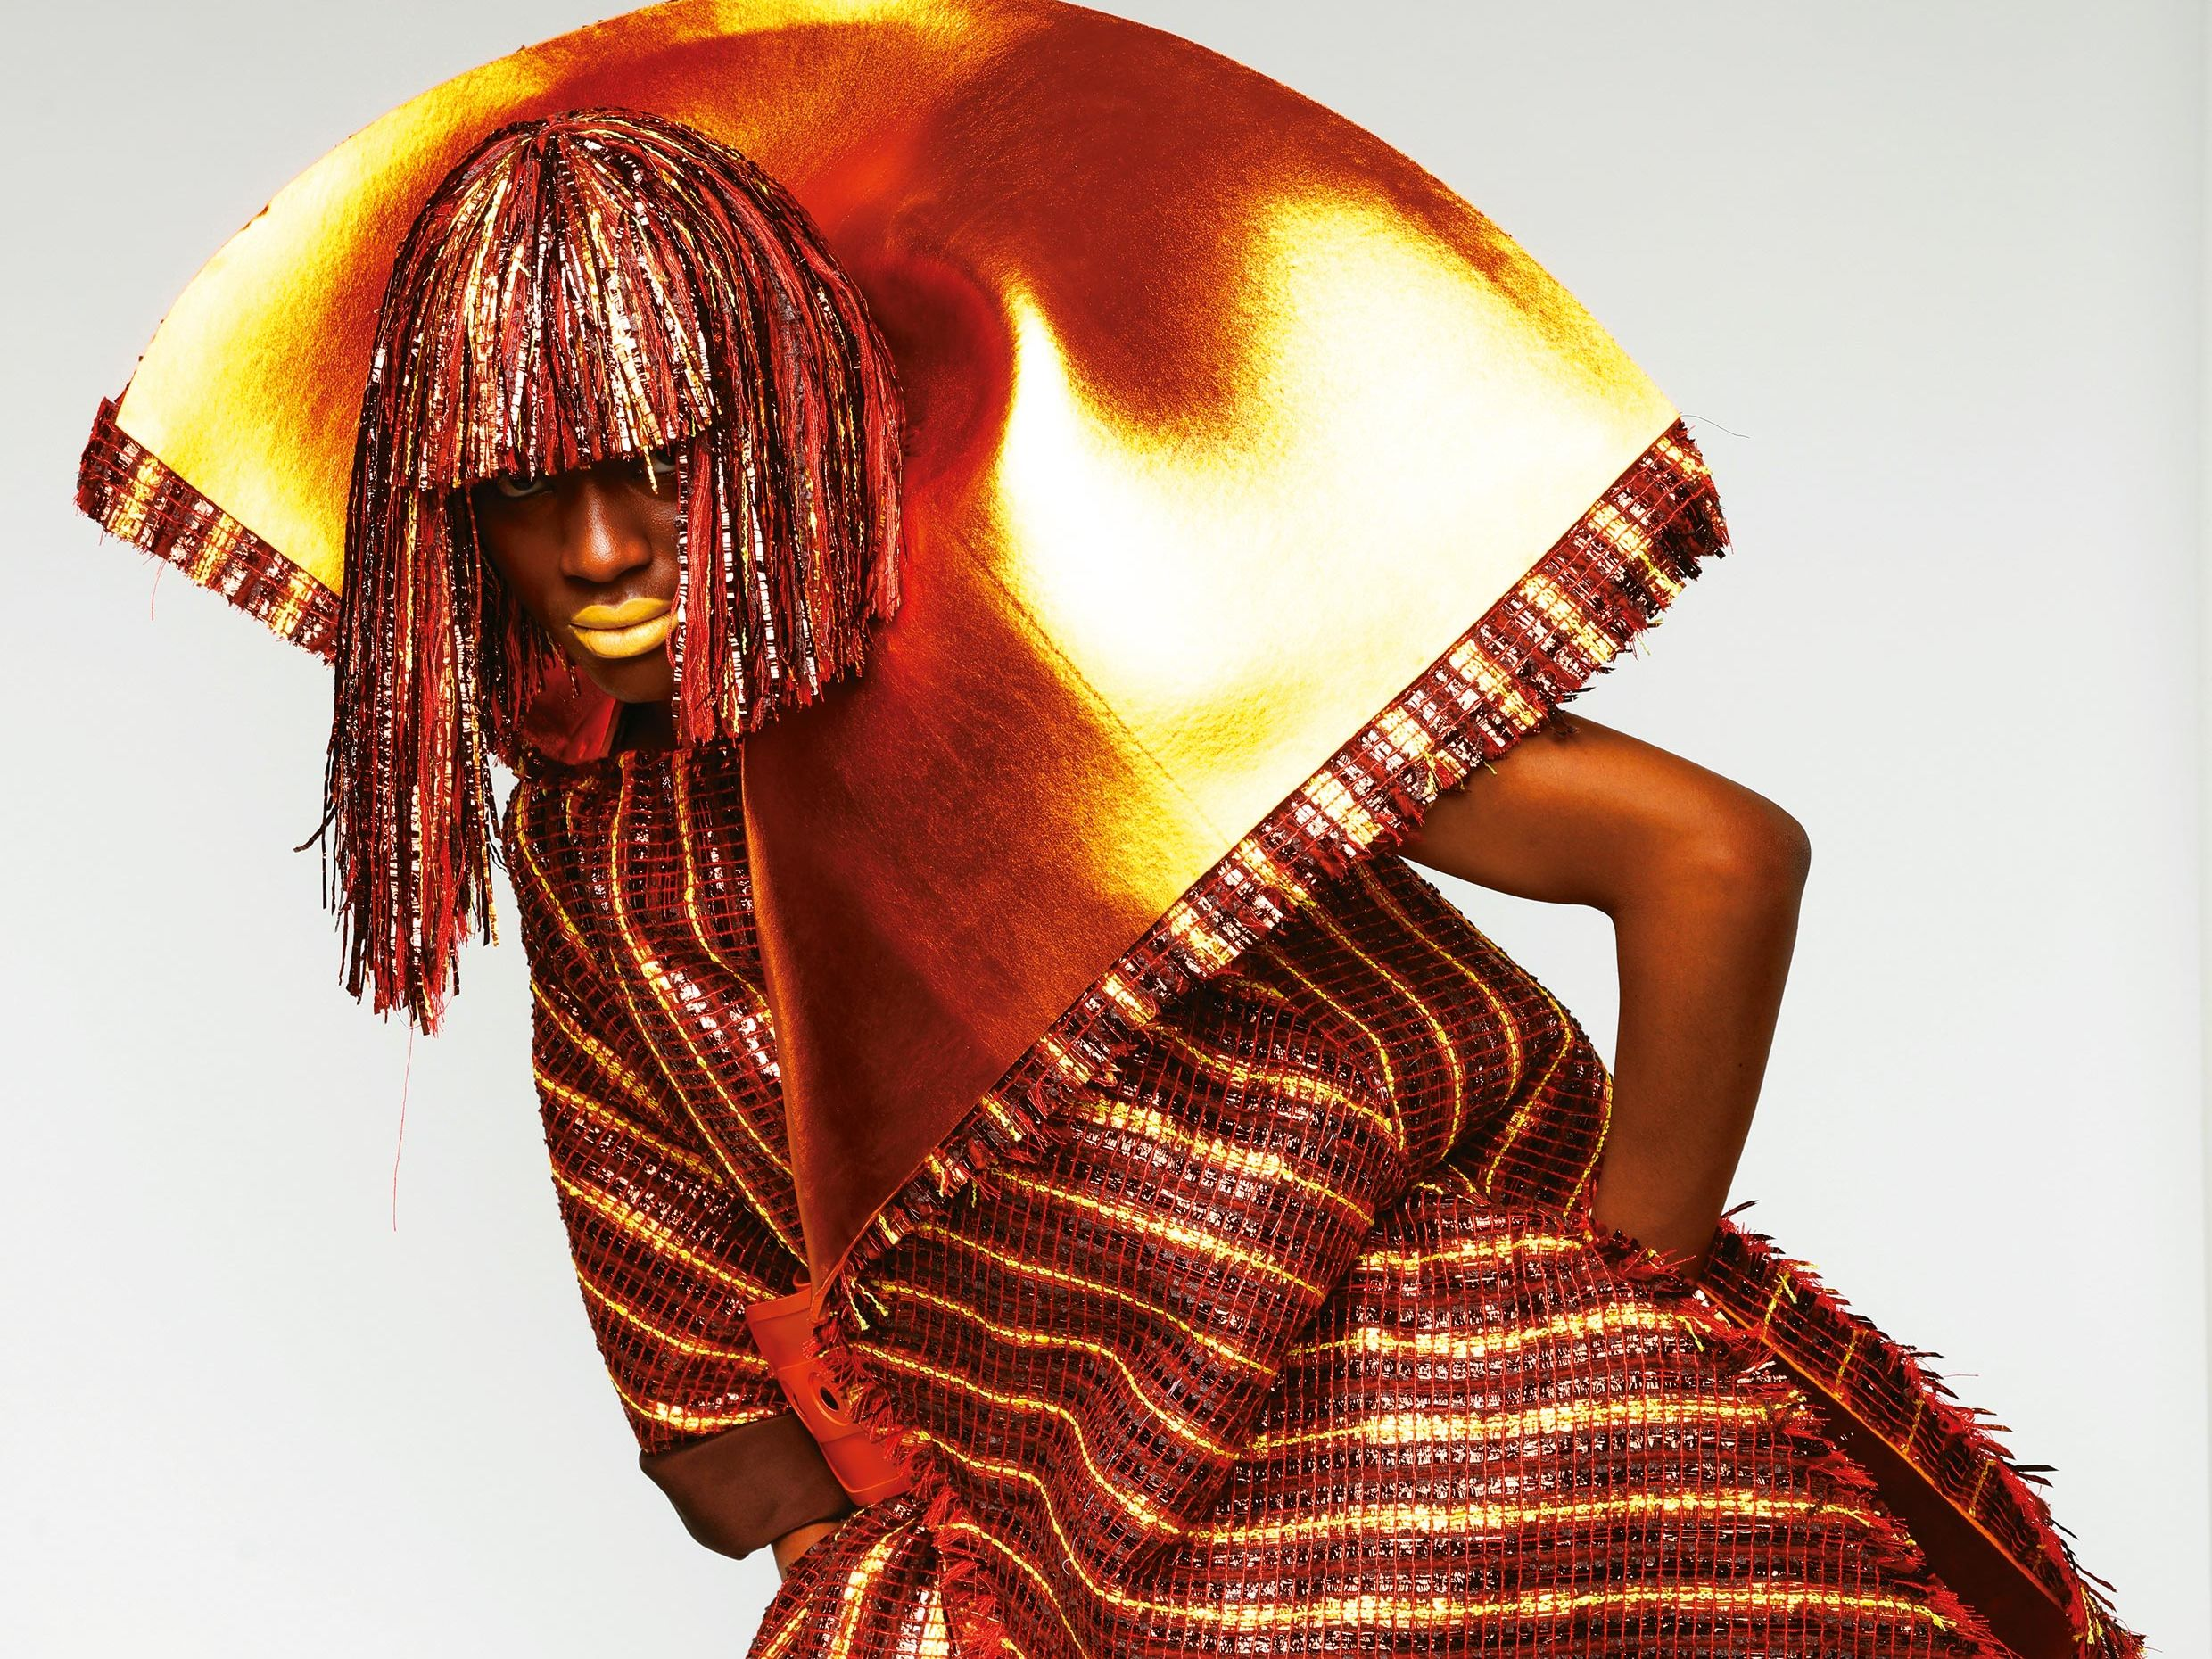 Woman wearing outfit woven in oranges and bronzes